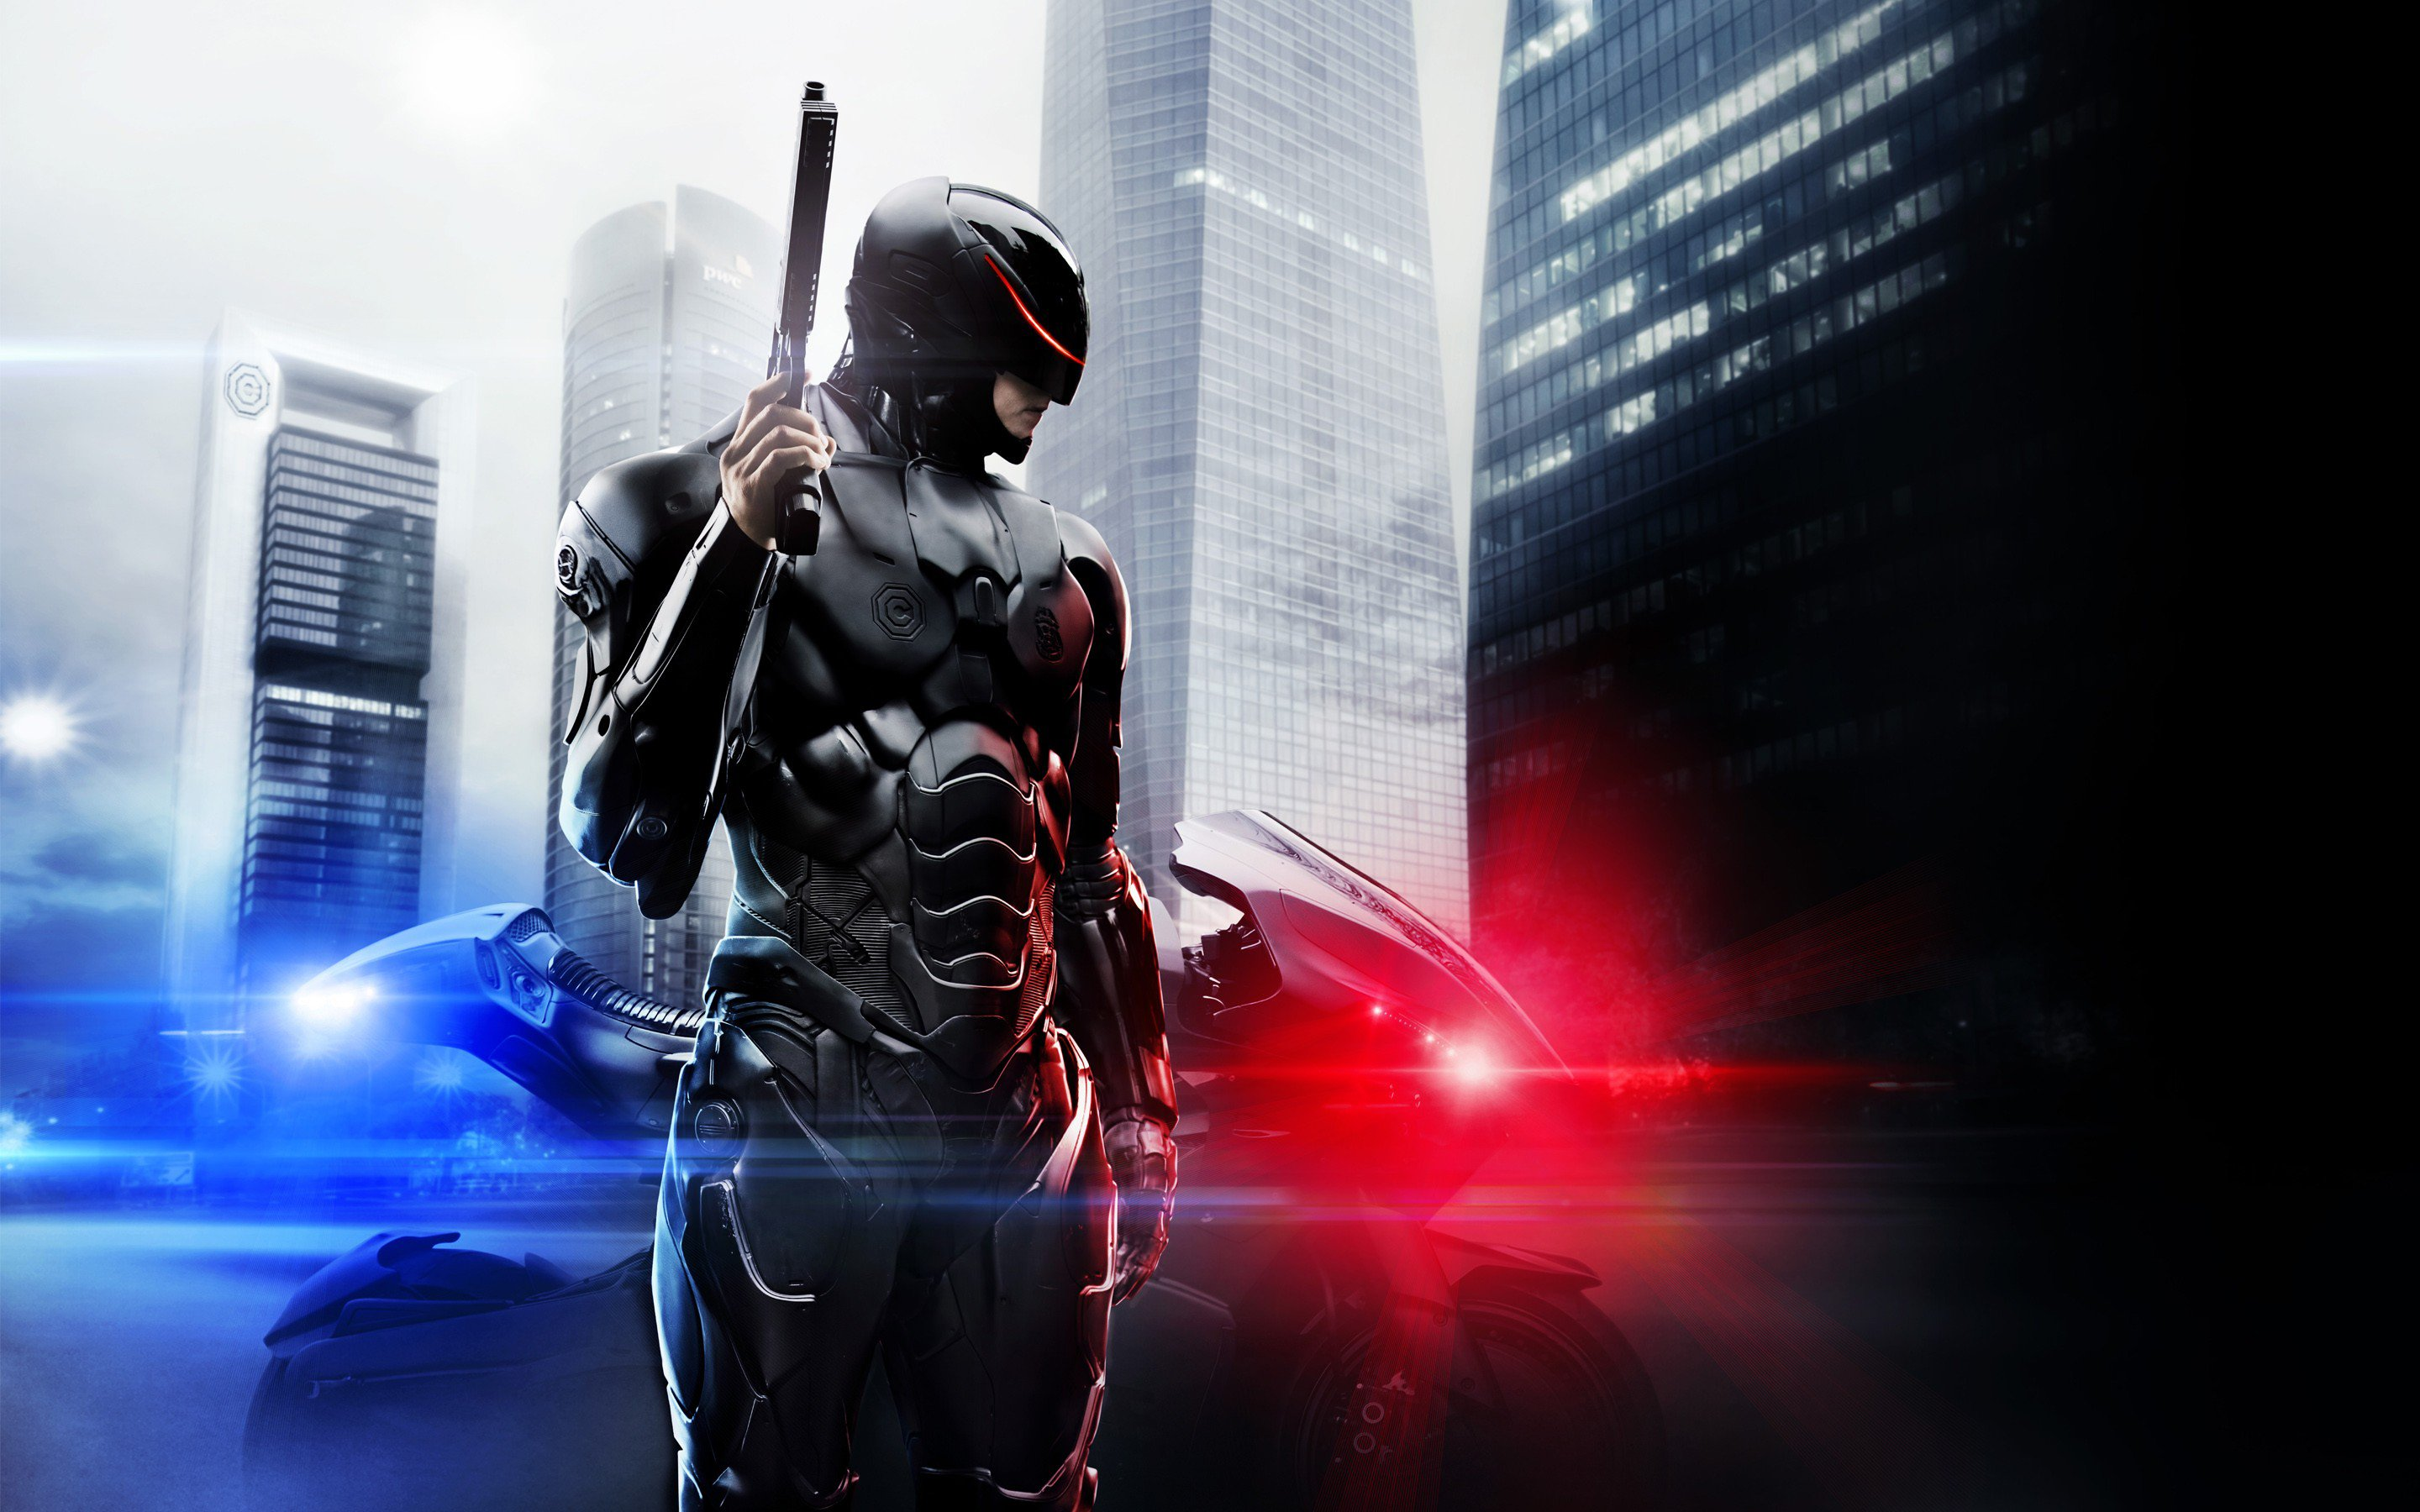 Funny Indian Girl Wallpaper Robocop Movie Hd Movies 4k Wallpapers Images